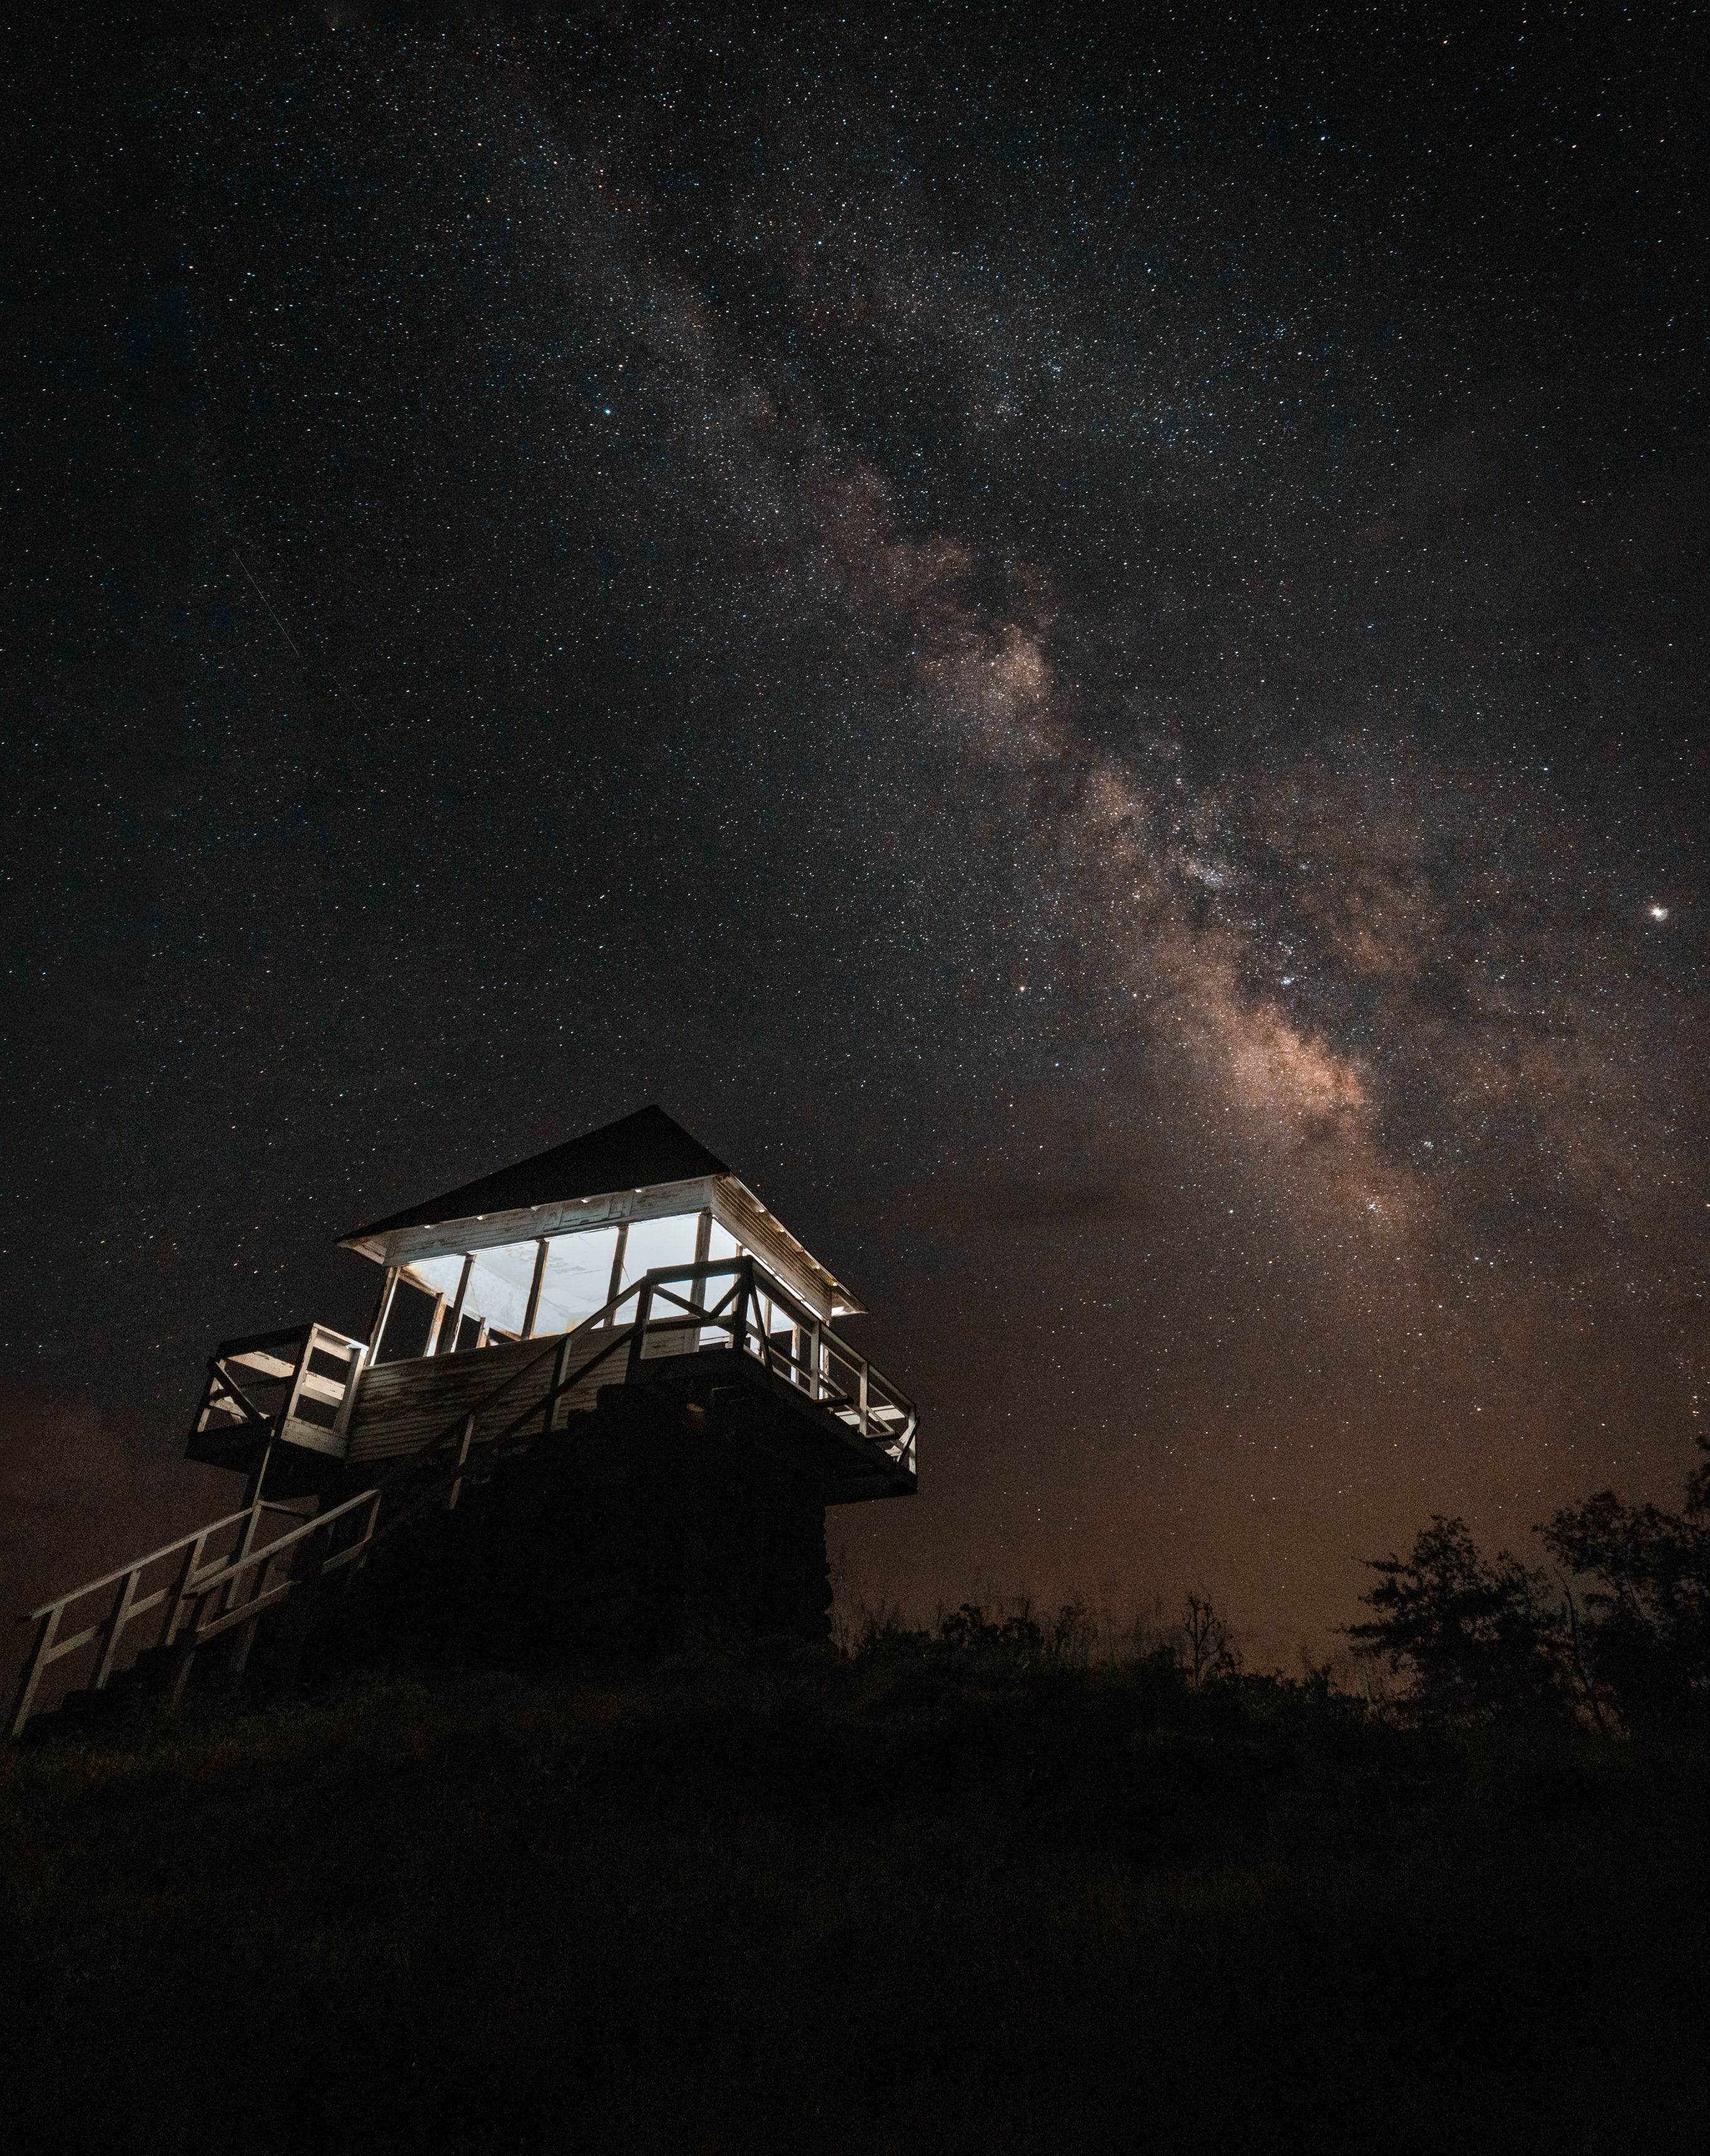 Milky Way night sky over Tall Peak Fire Tower in the Arkansas Ouachitas